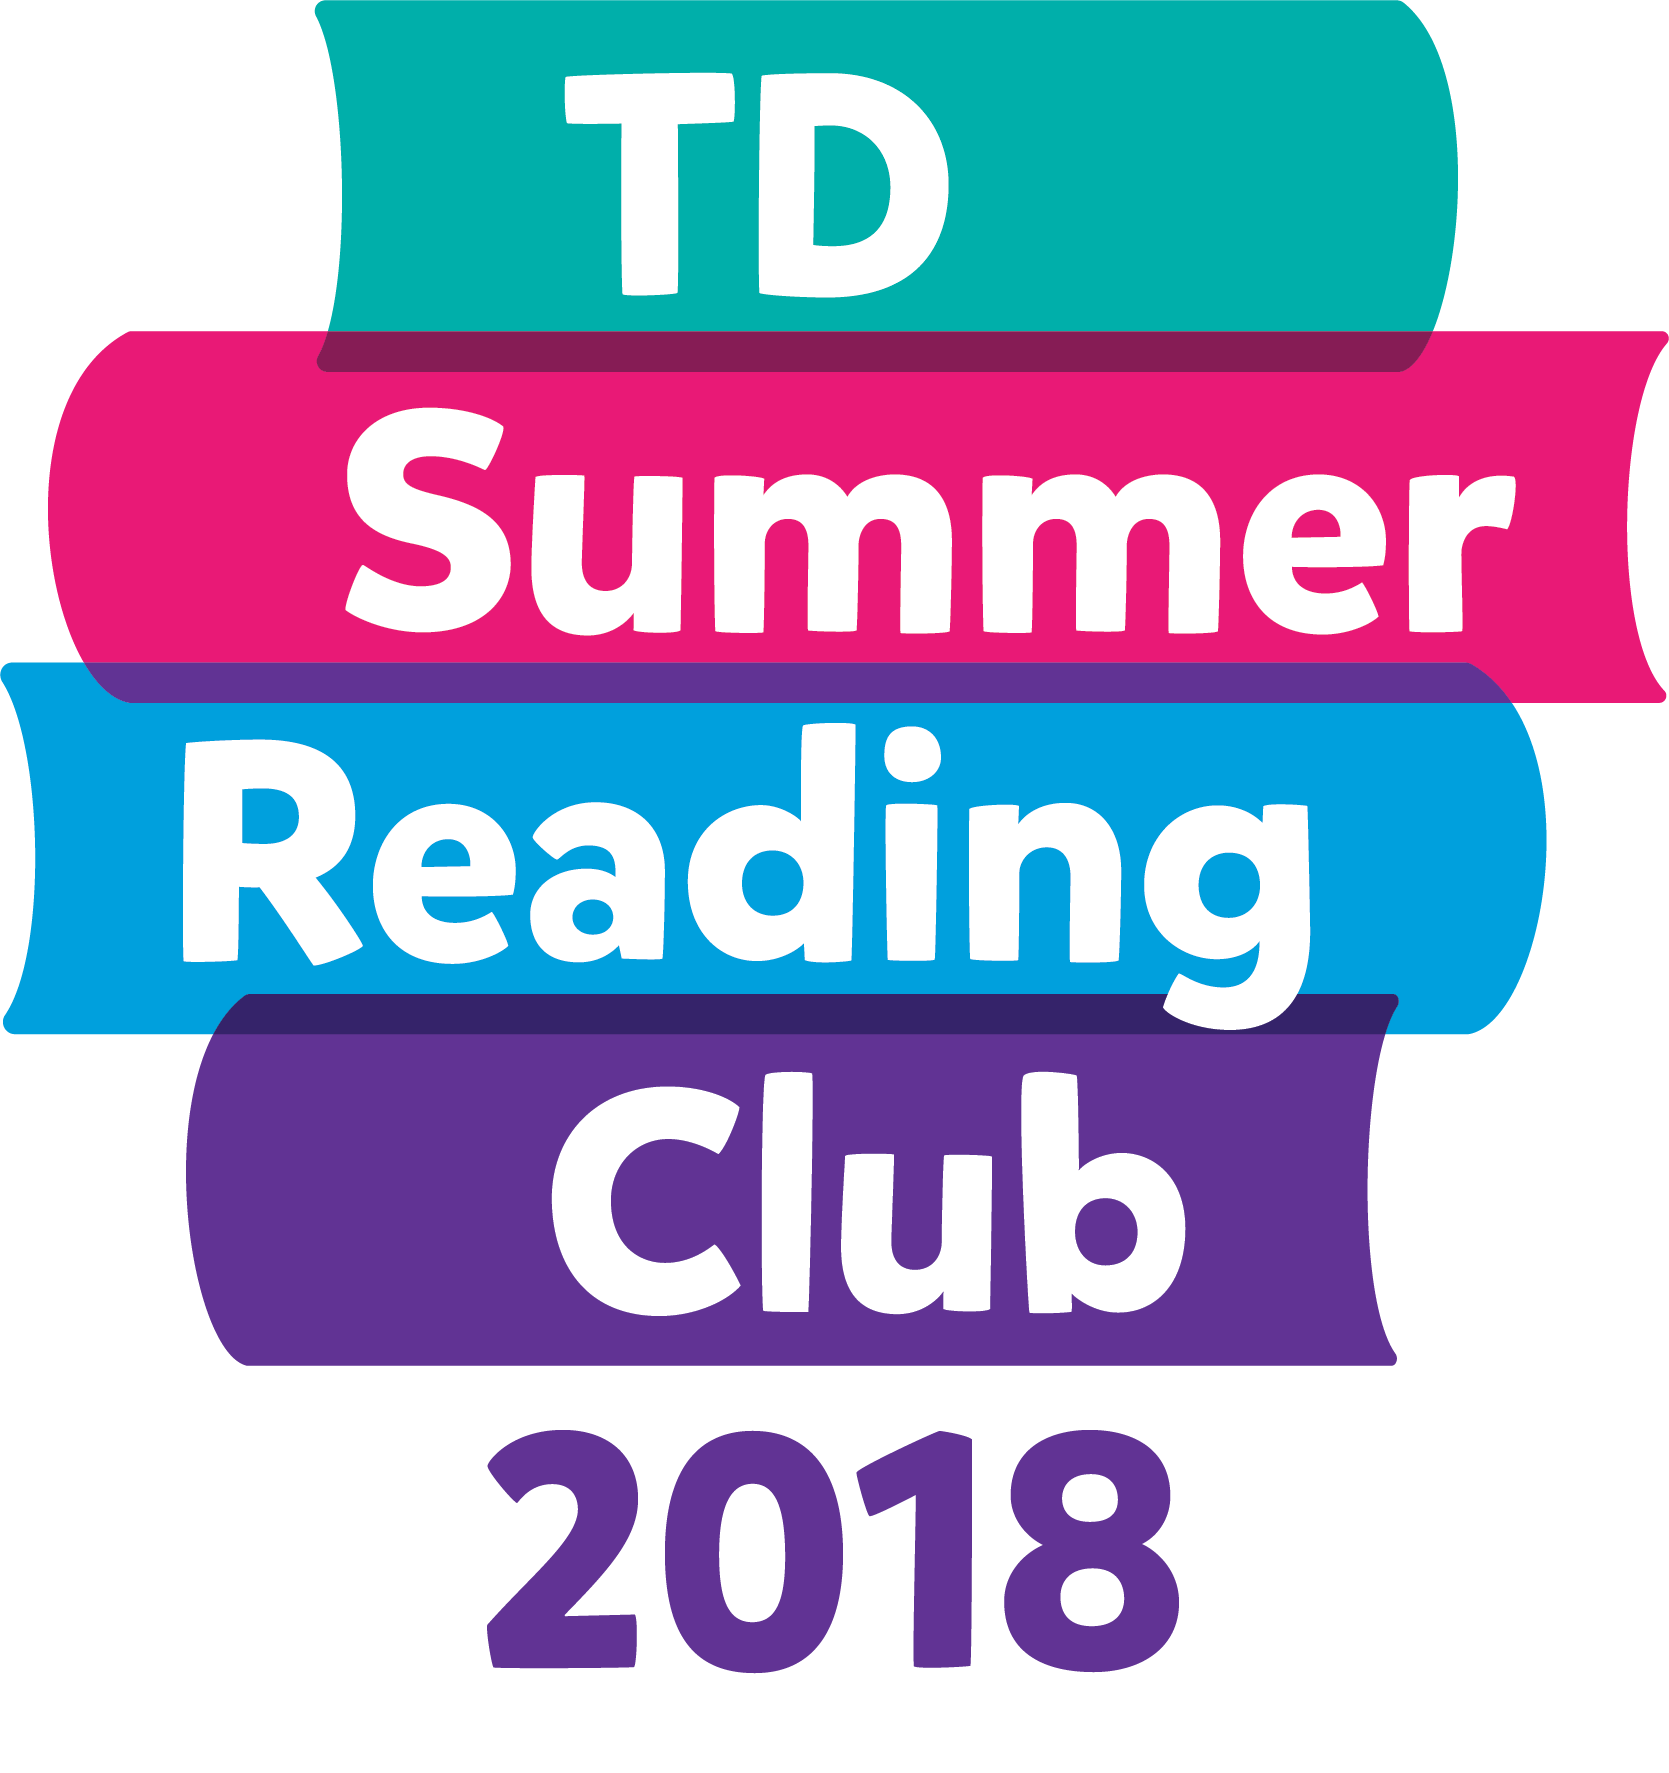 Book group clipart clipart library download Home - TD Summer Reading Club clipart library download